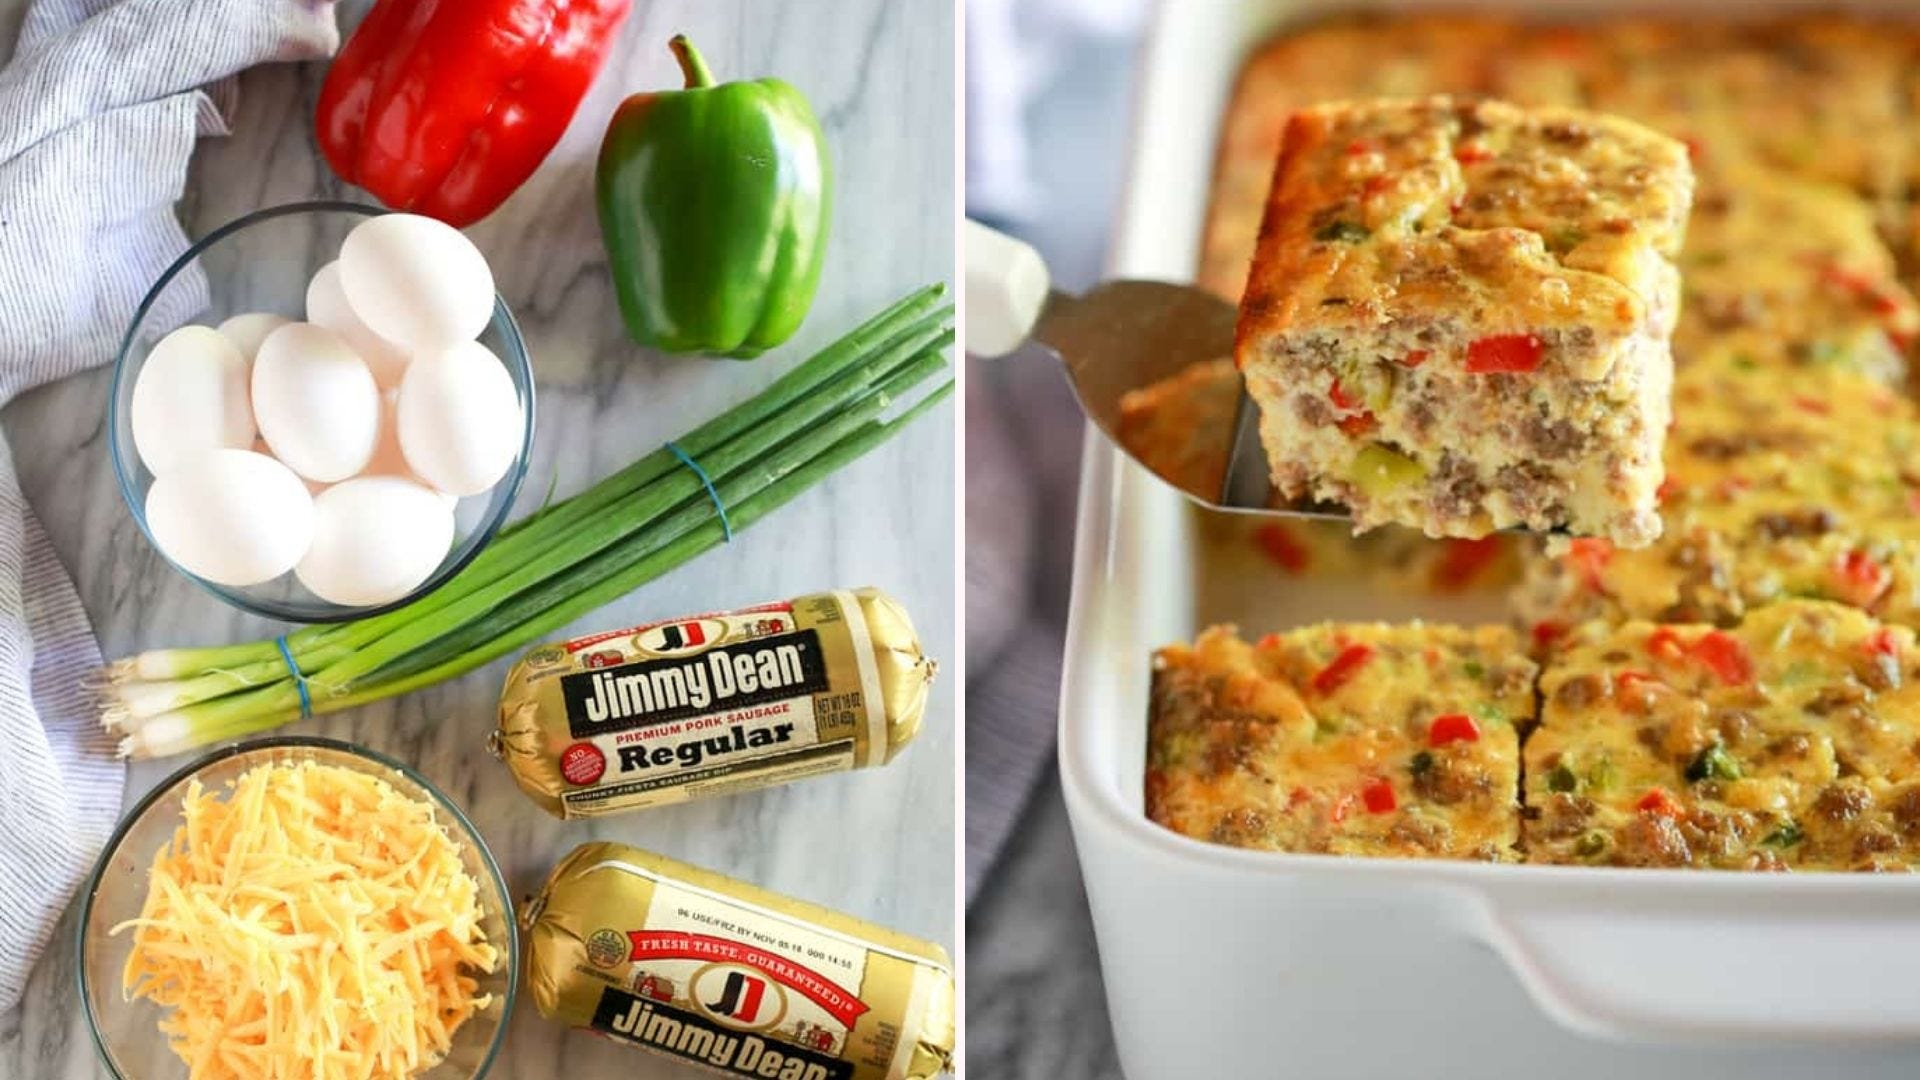 Two images: the left image displays ingredients used to make a breakfast casserole and the right image is of a square piece of casserole from a freshly baked dish.